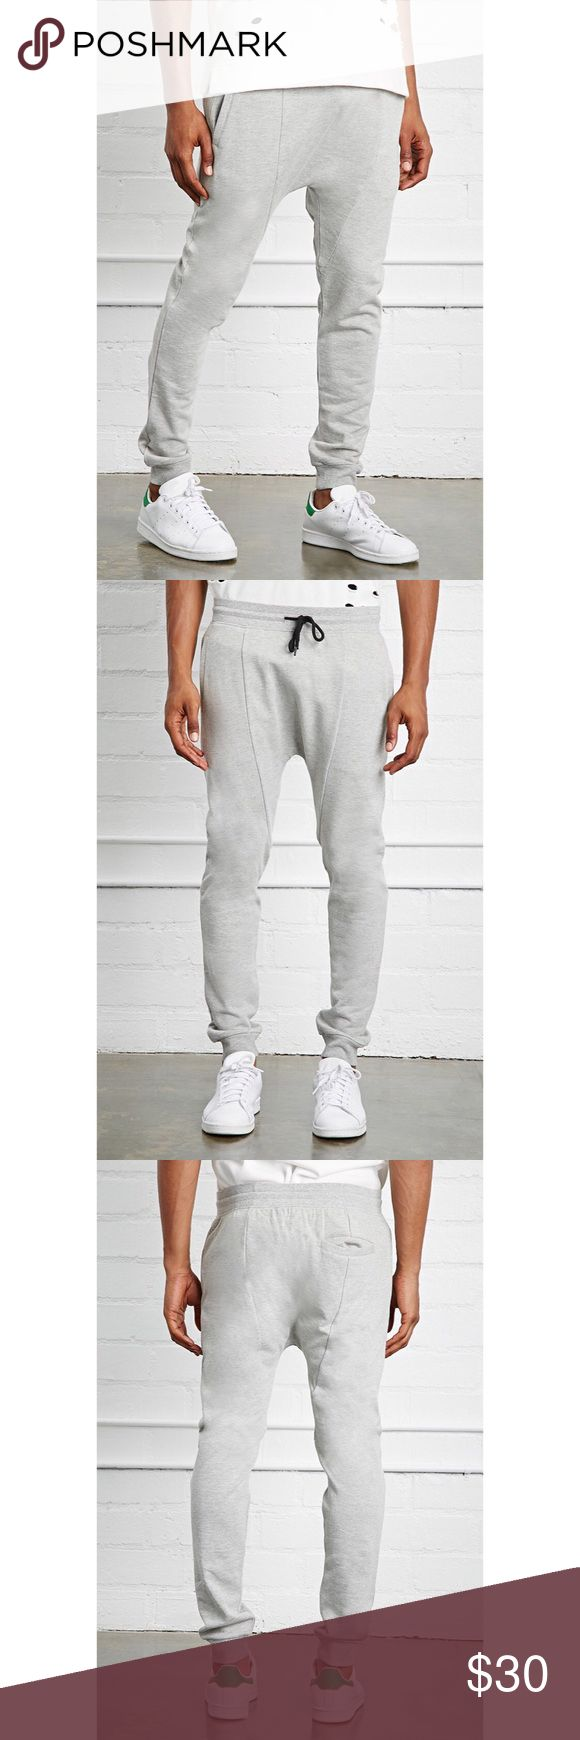 """✨Drop Crotch Joggers✨ ✨A Pair Of French Terry Knit Drop Crotch Joggers With Ribbed Trim, An Elasticized Drawstring Waist, Slanted Front Pockets, And One Back Welt Pocket. Content + Care - 59% Cotton, 41% Polyester  - Hand Wash Cold  - Made In China  Size + Fit - Model Is 6'2"""" And Wearing A Small  - Inseam: 28""""  - Waist: 32""""  - Rise: 14""""✨ Forever 21 Pants Sweatpants & Joggers"""